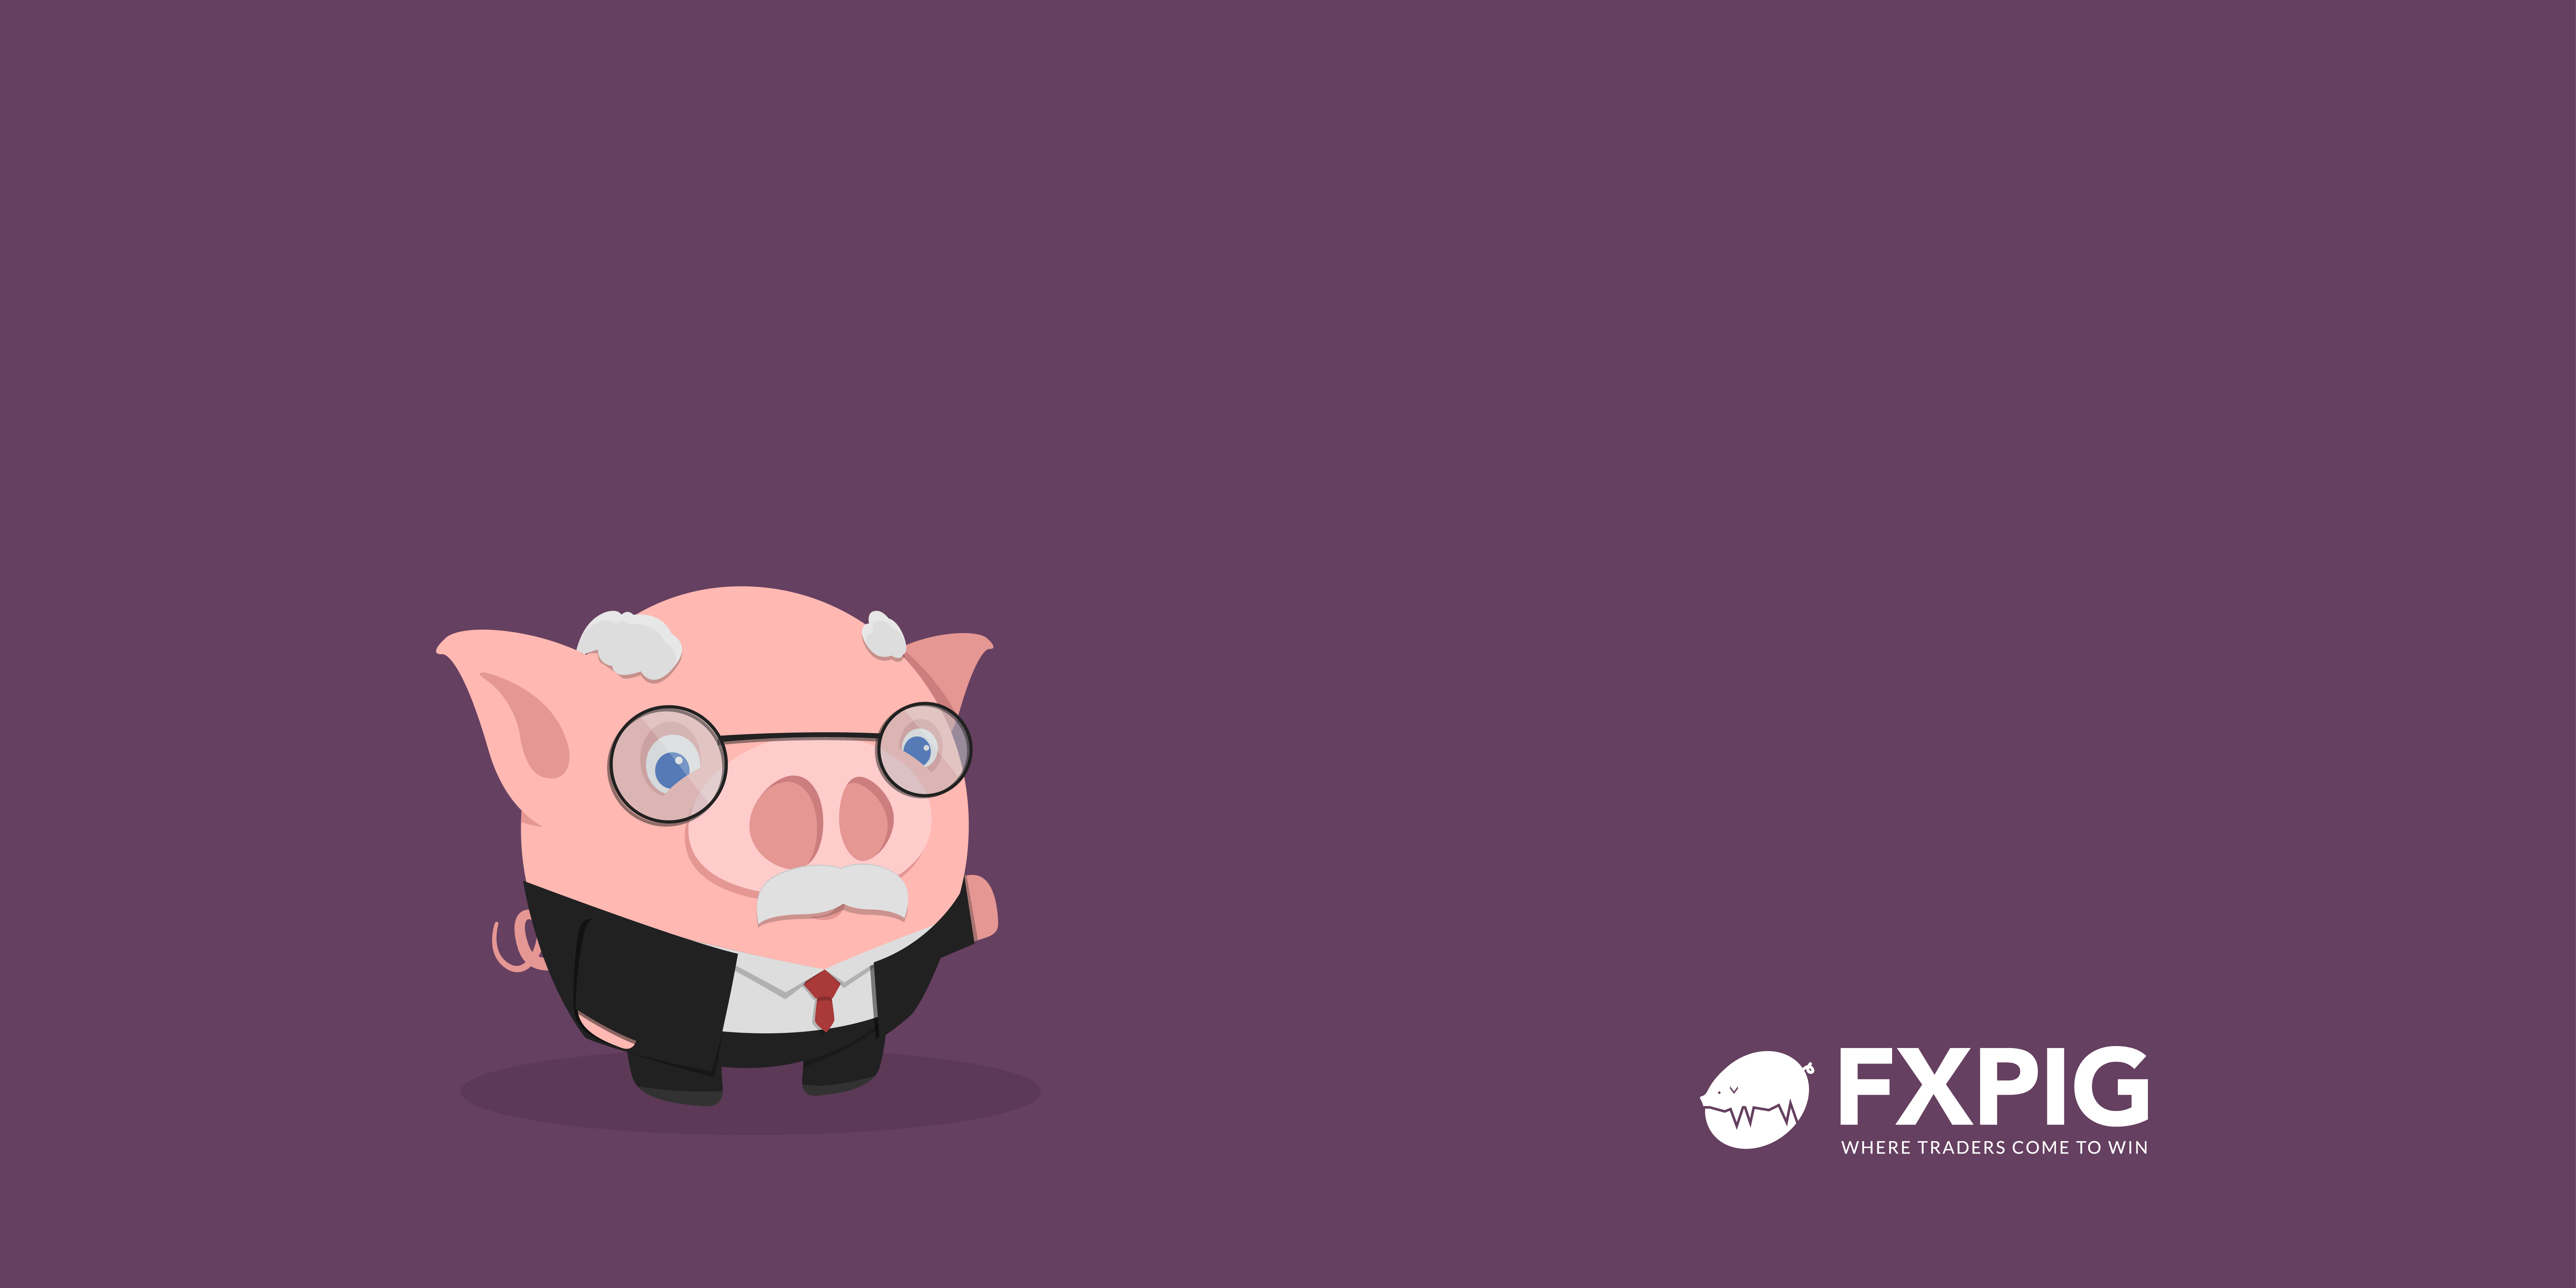 FOREX_Trading-wisdom_quote-Pig-Insider_FXPIG